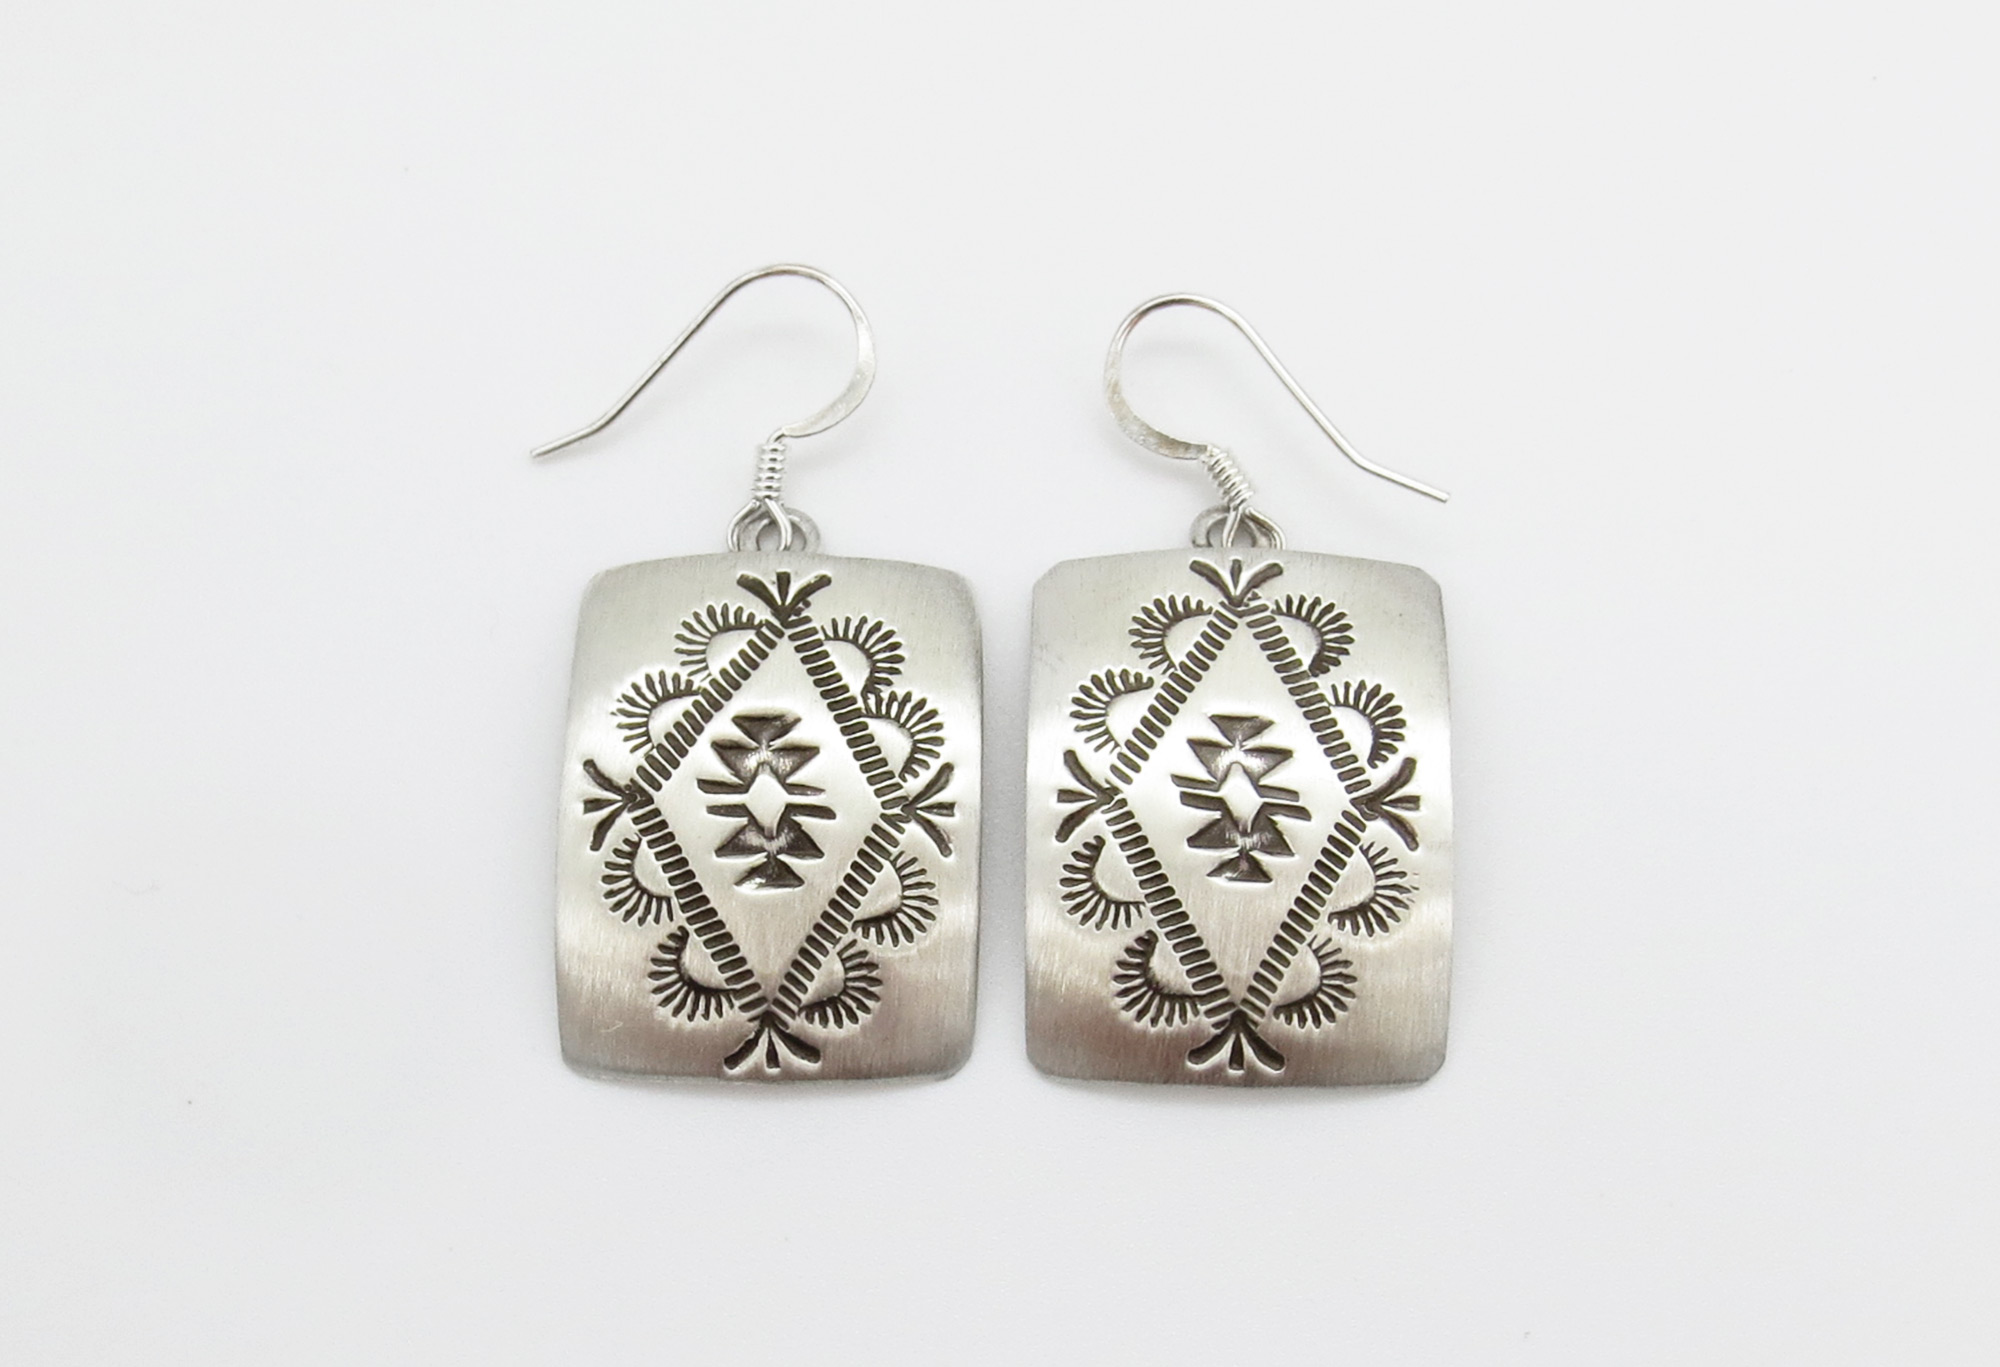 Stamped Sterling Silver Earrings Native American Jewelry - 6247rio